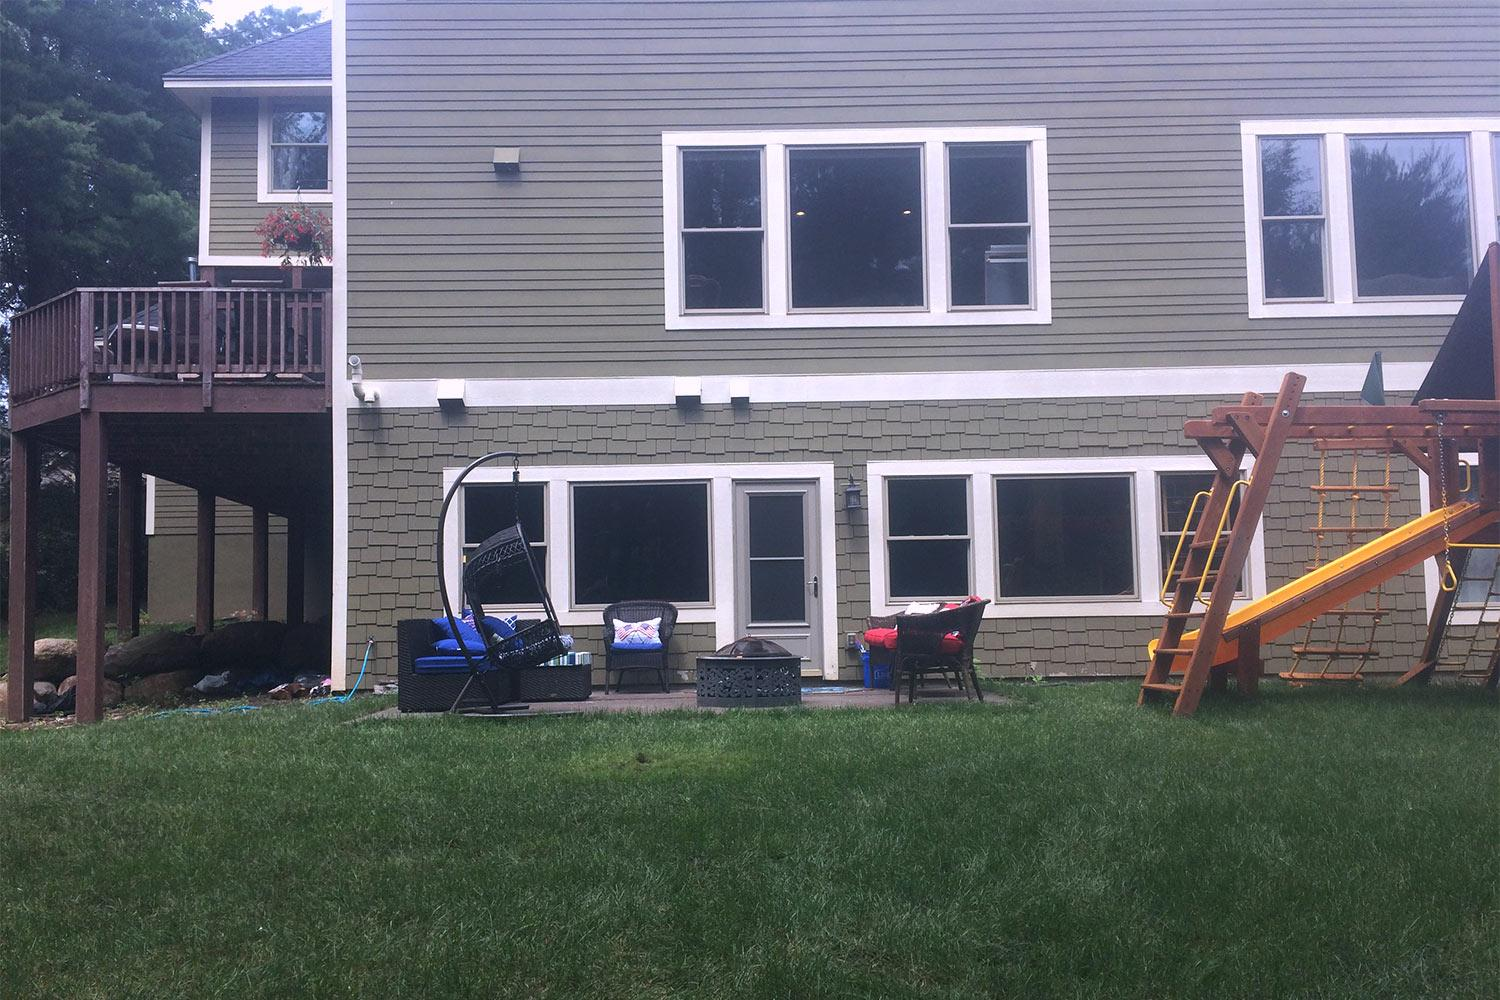 Typical suburban backyard with a lawn, small patio with furniture, and a child's jungle gym.